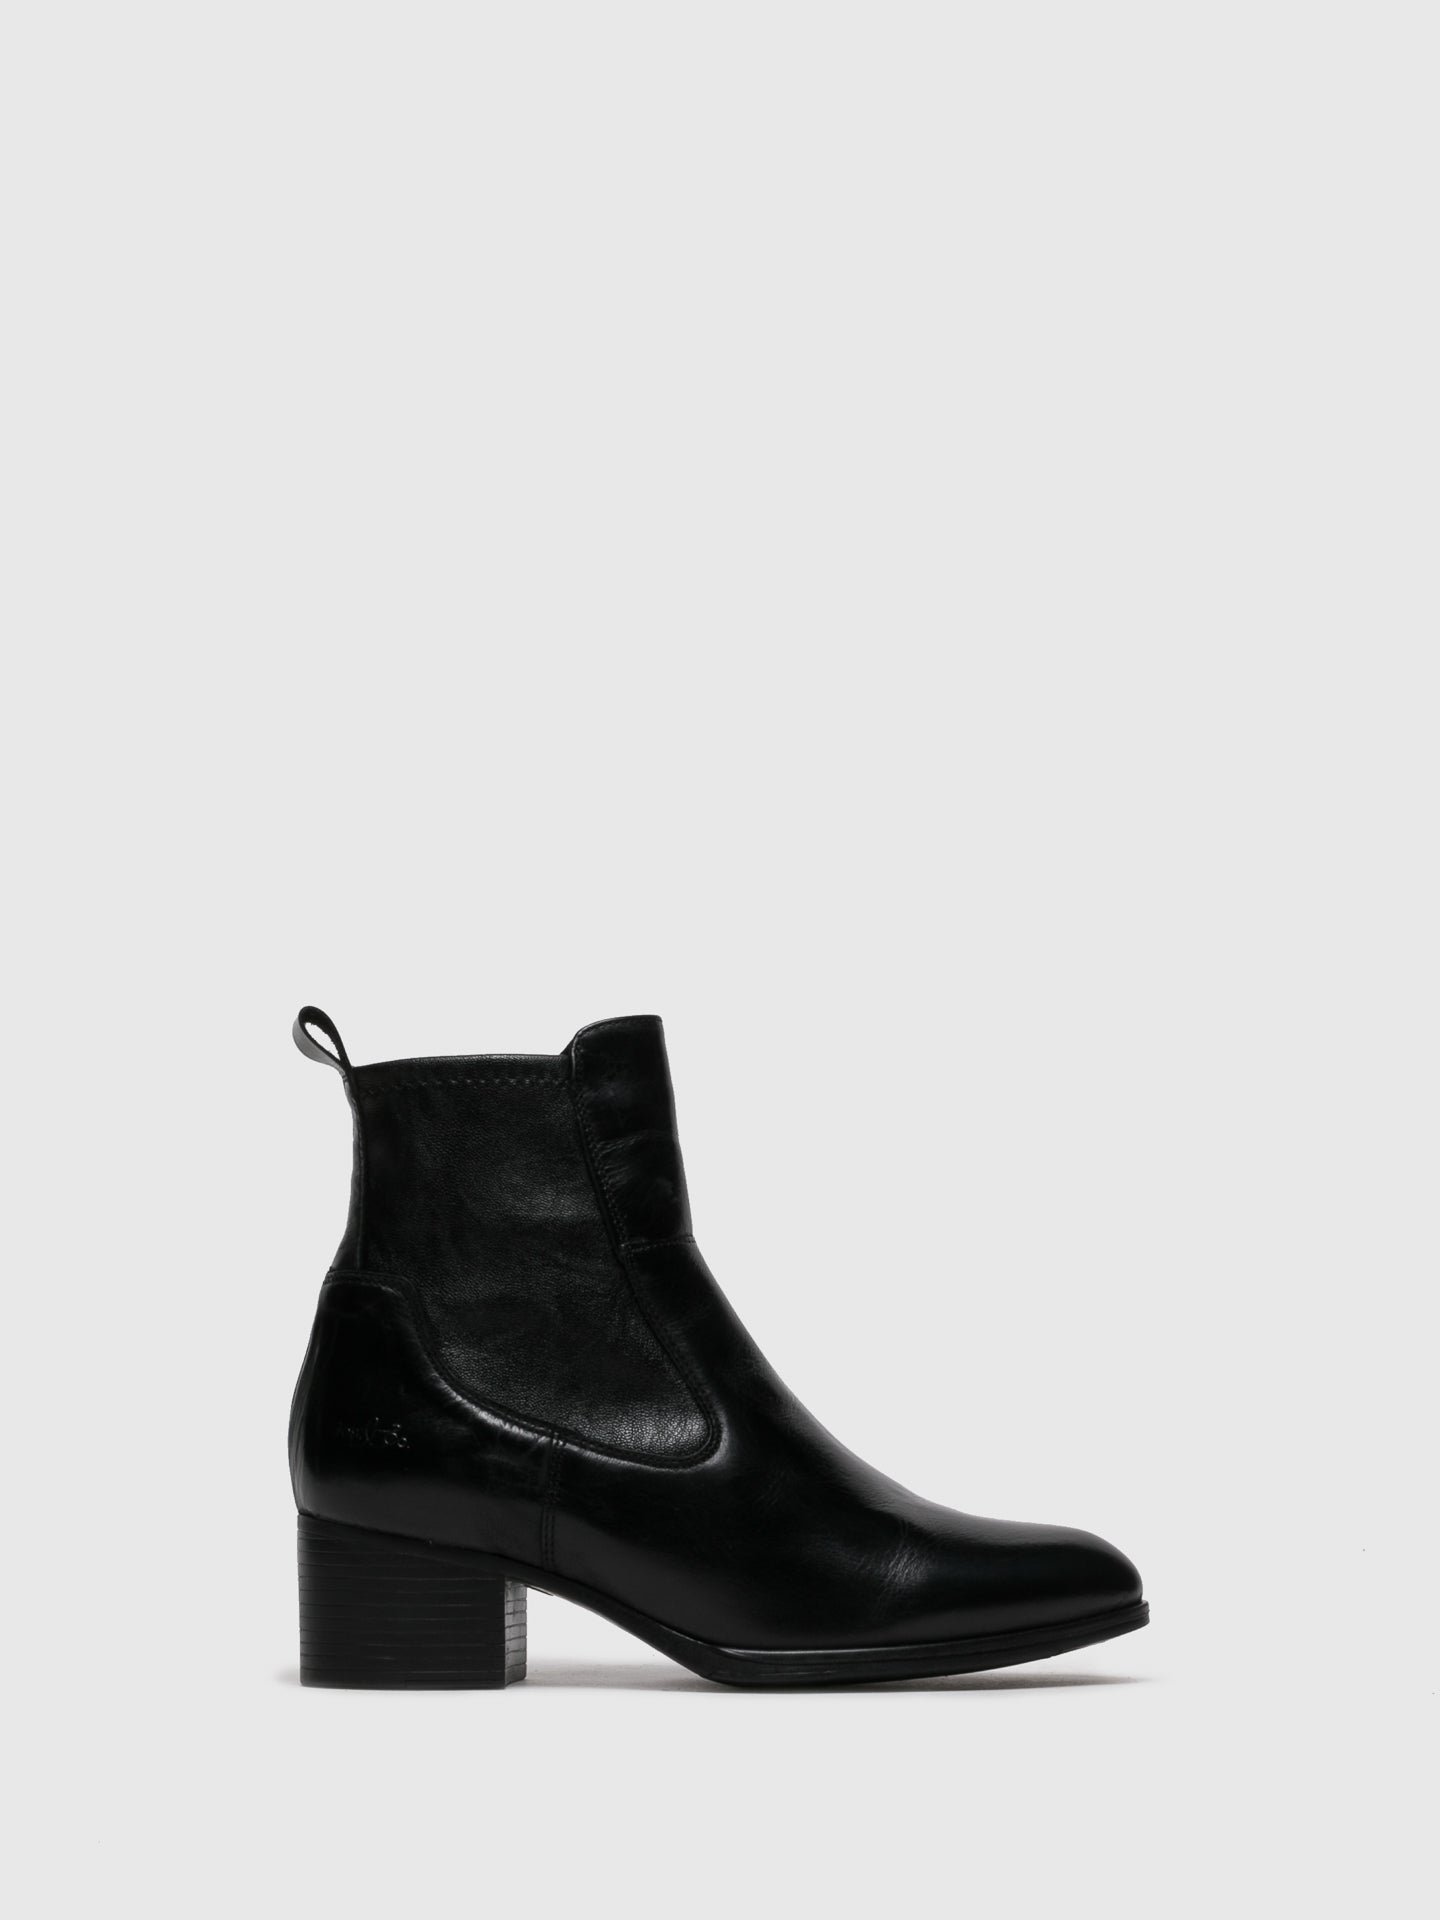 Bos&Co Black Pointed Toe Ankle Boots